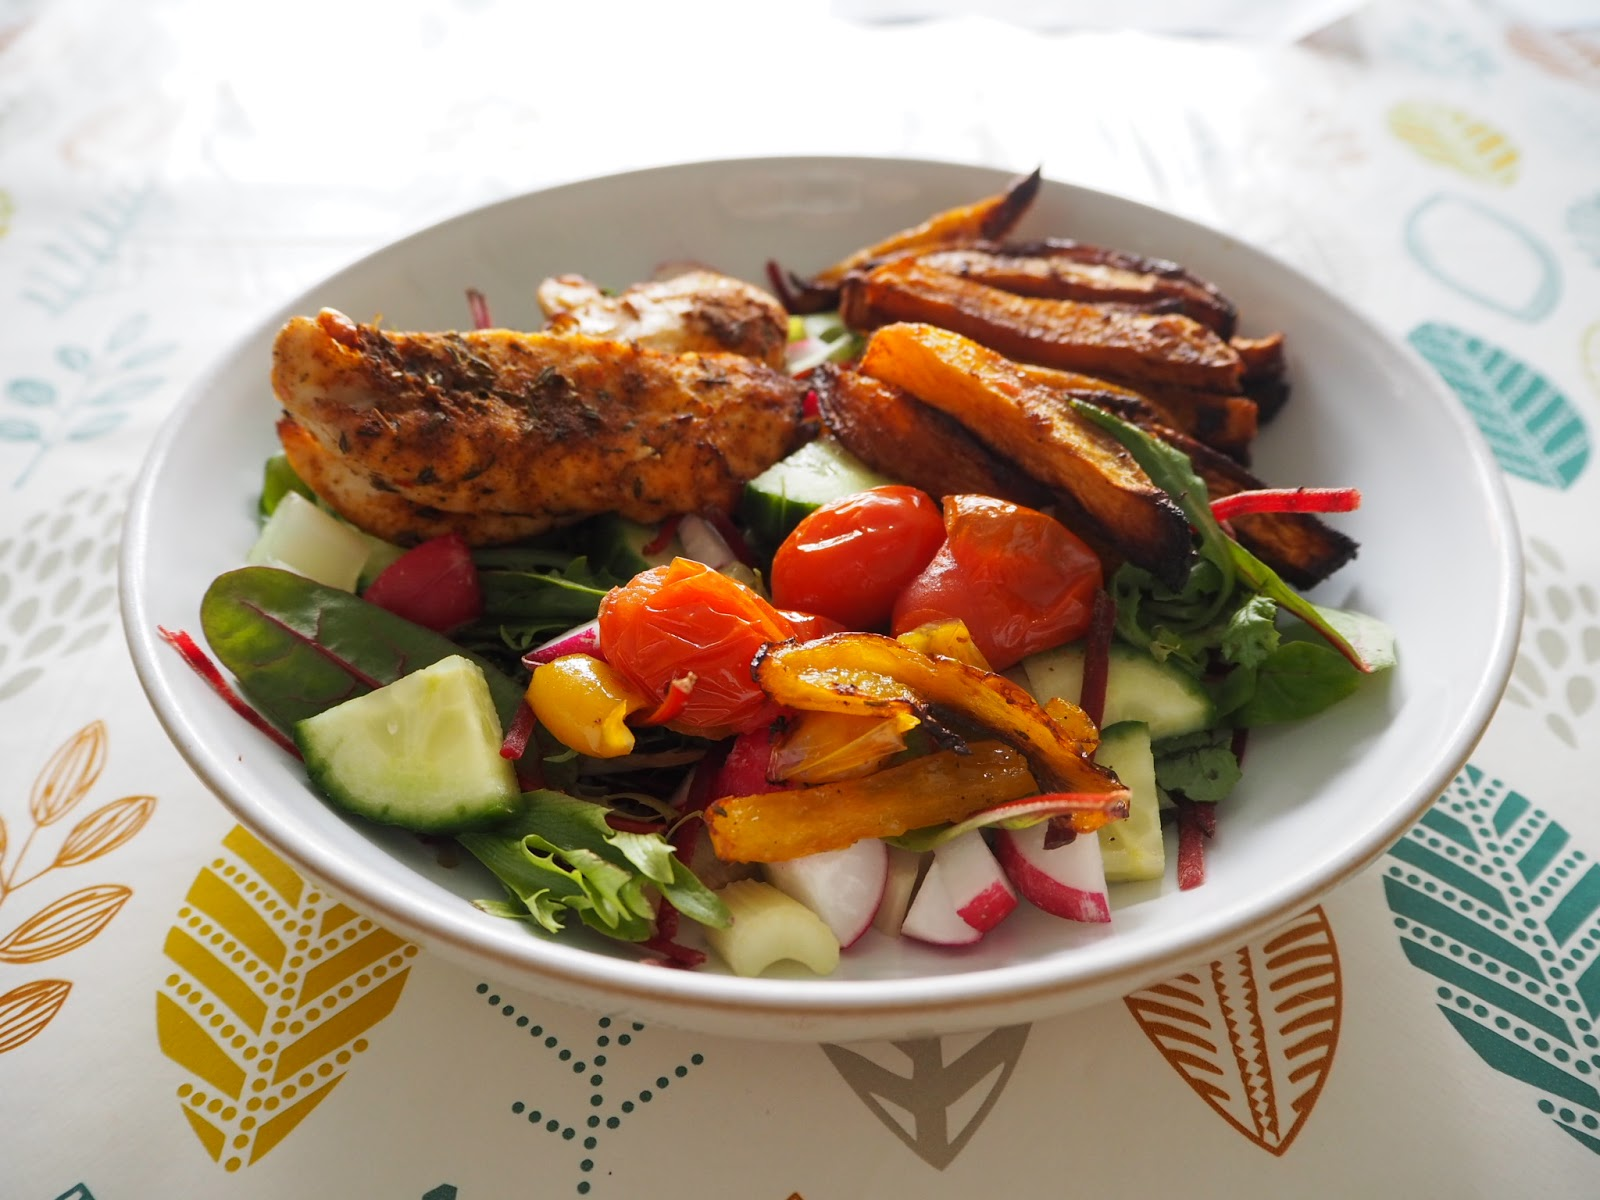 Cajun Chicken and salad